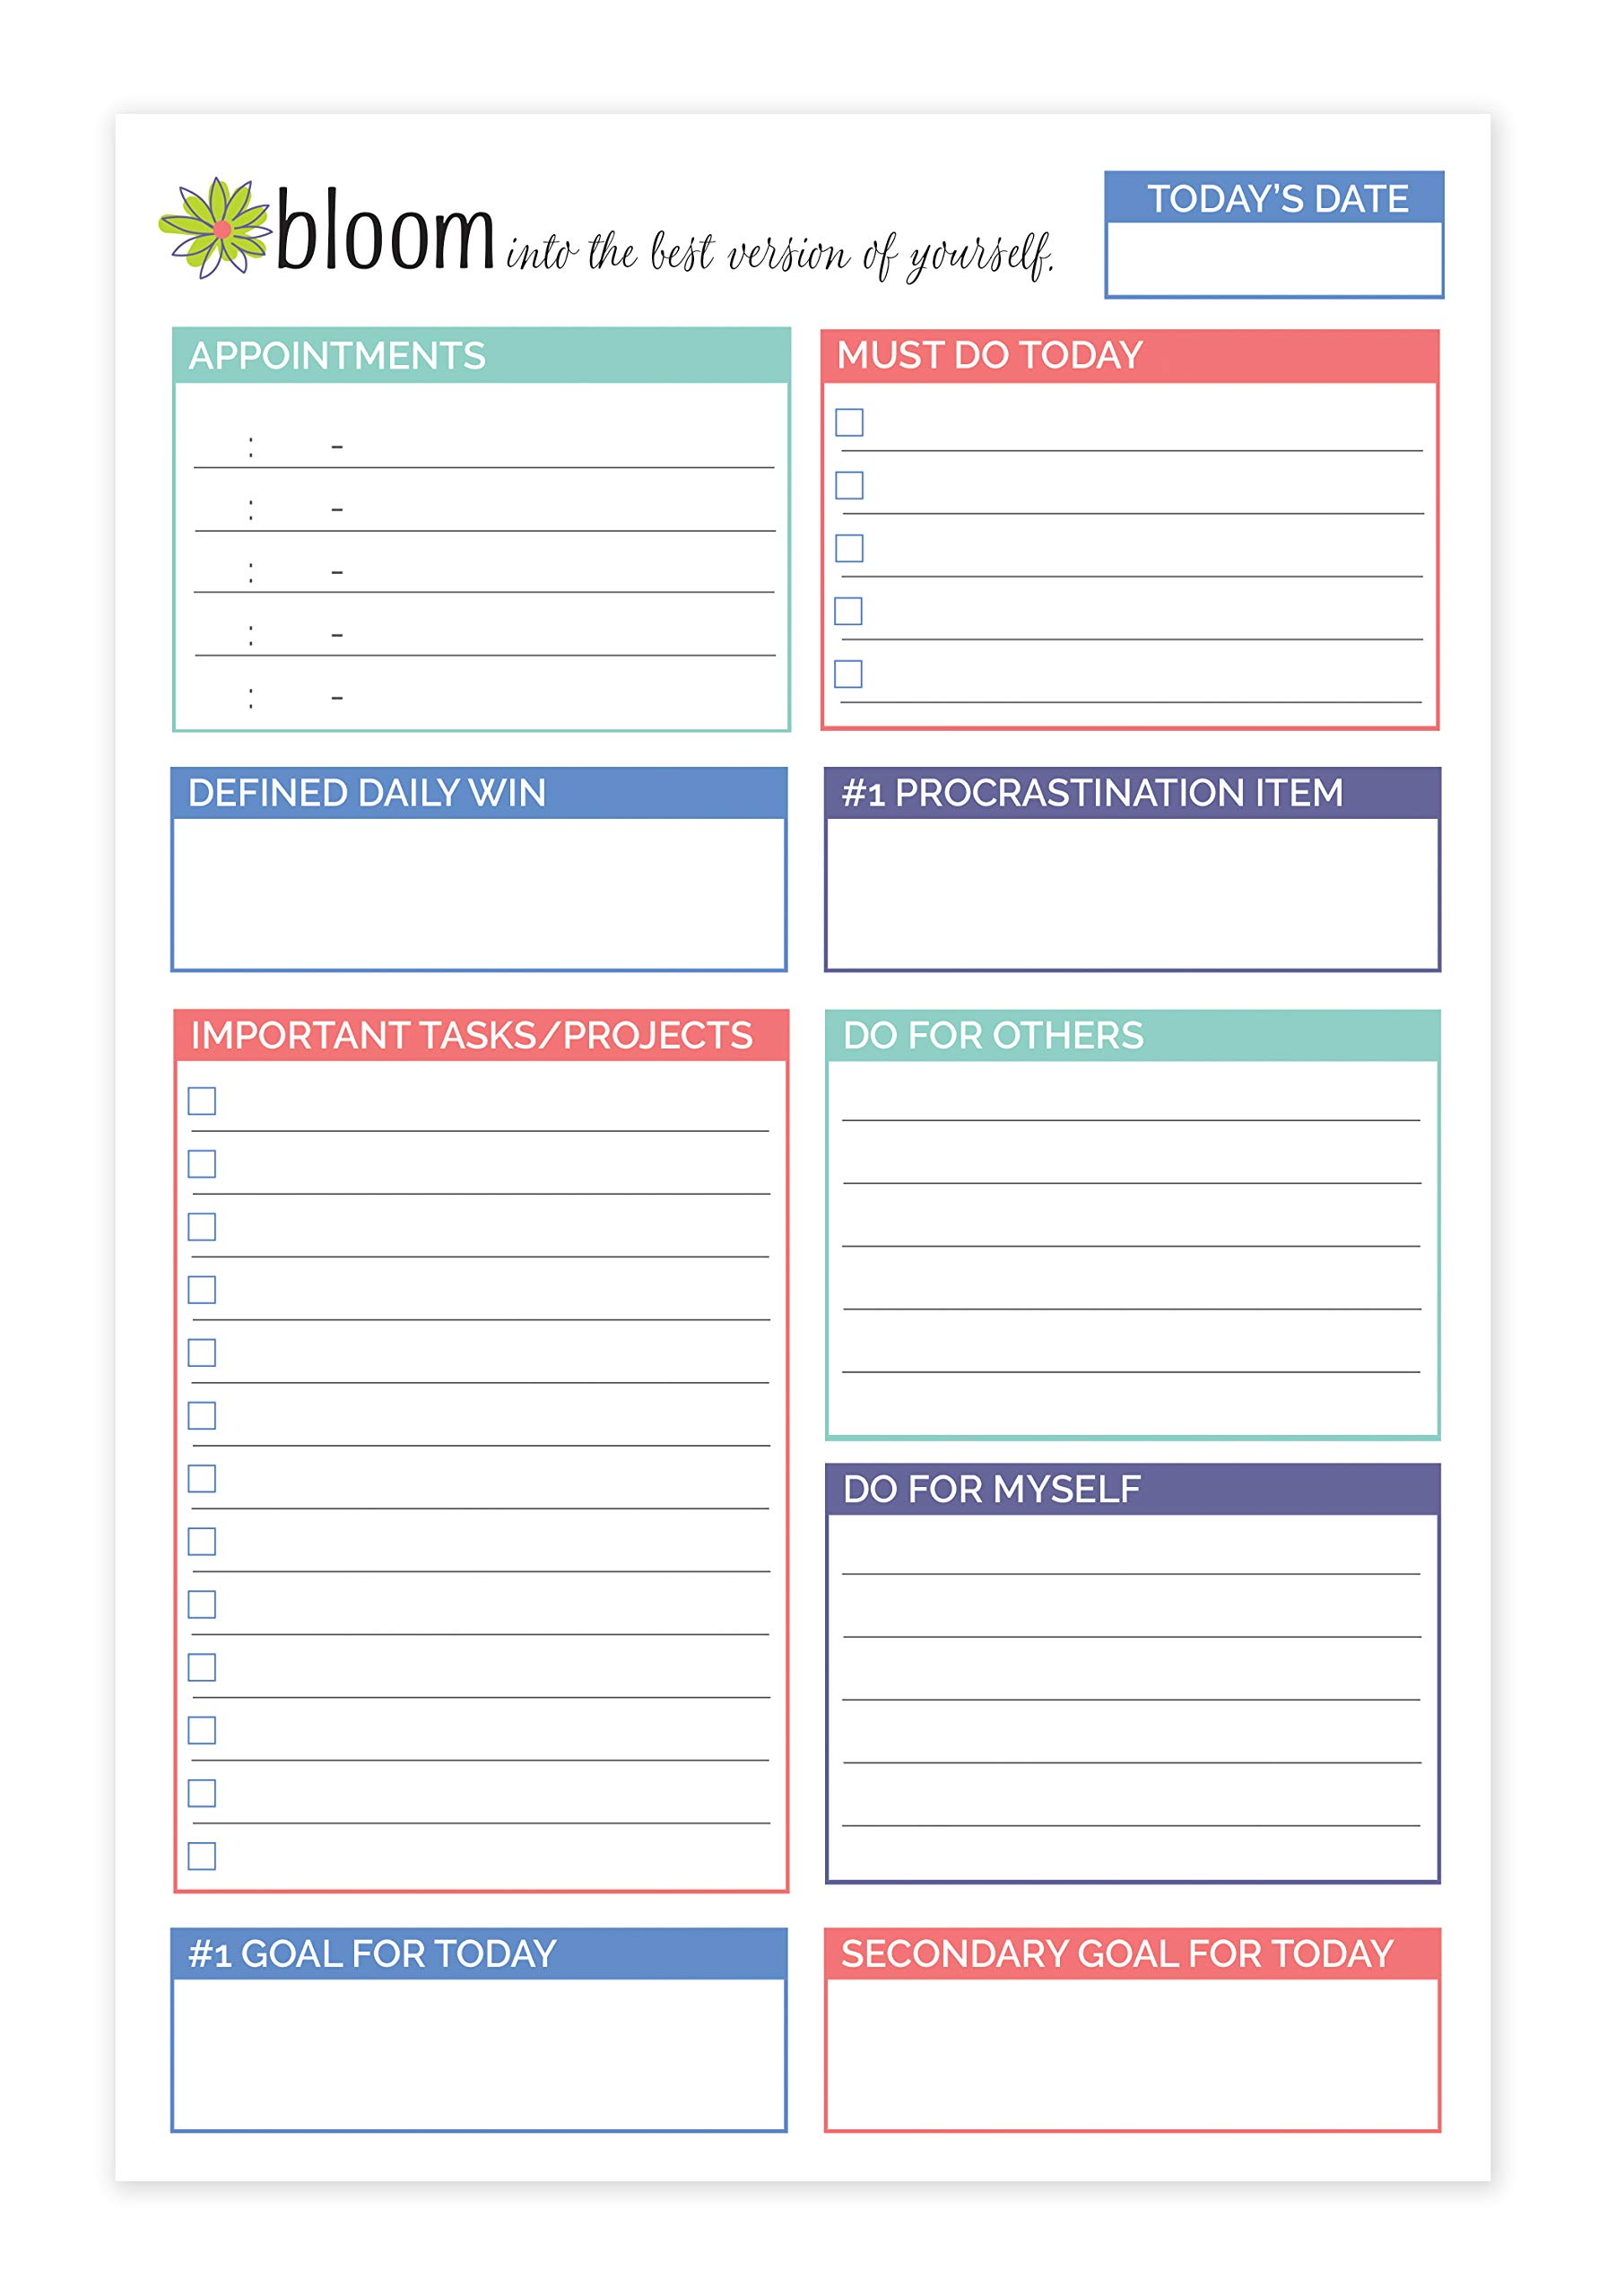 bloom daily planners Double Sided Daily Planning System Tear Off to Do Pad - Teal - 6'' x 9''